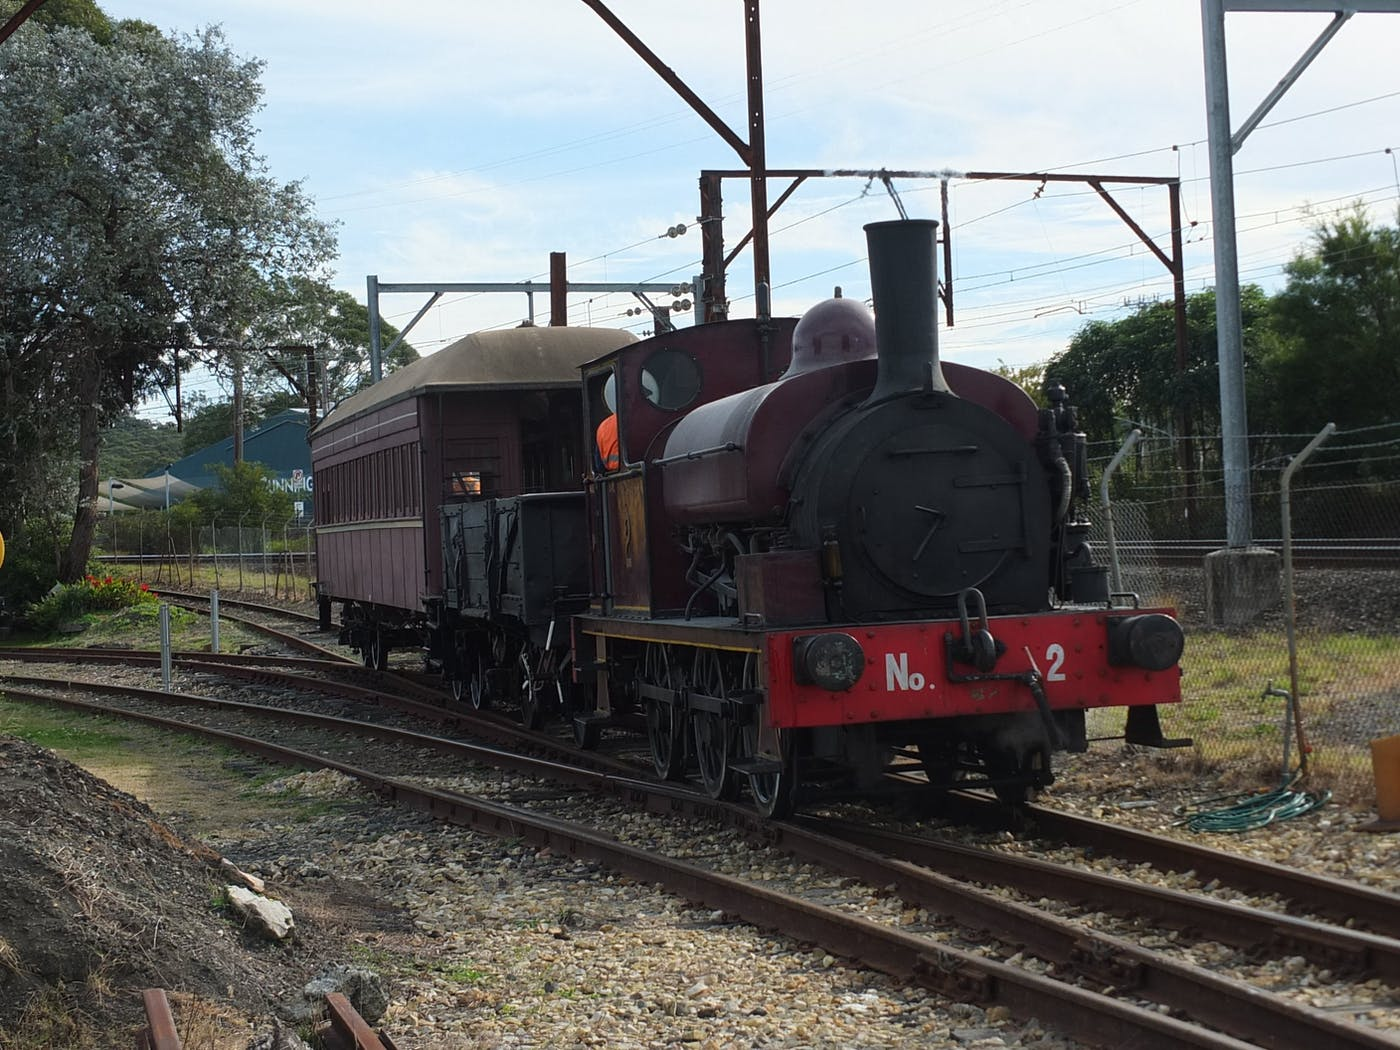 Open day with rides on heritage steam train